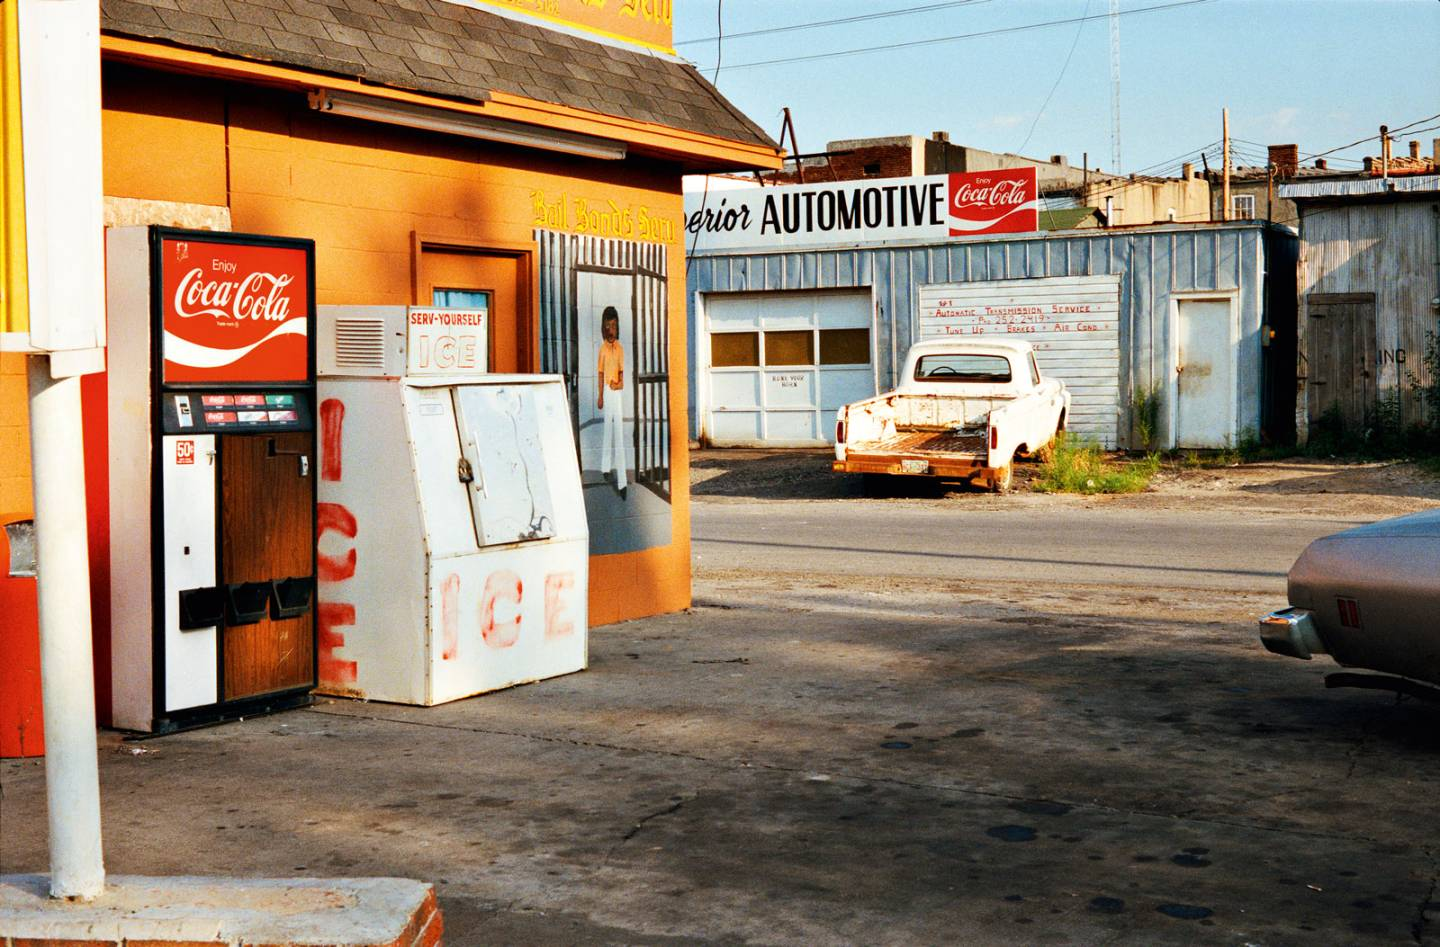 Debut of colour photography William Eggleston realism